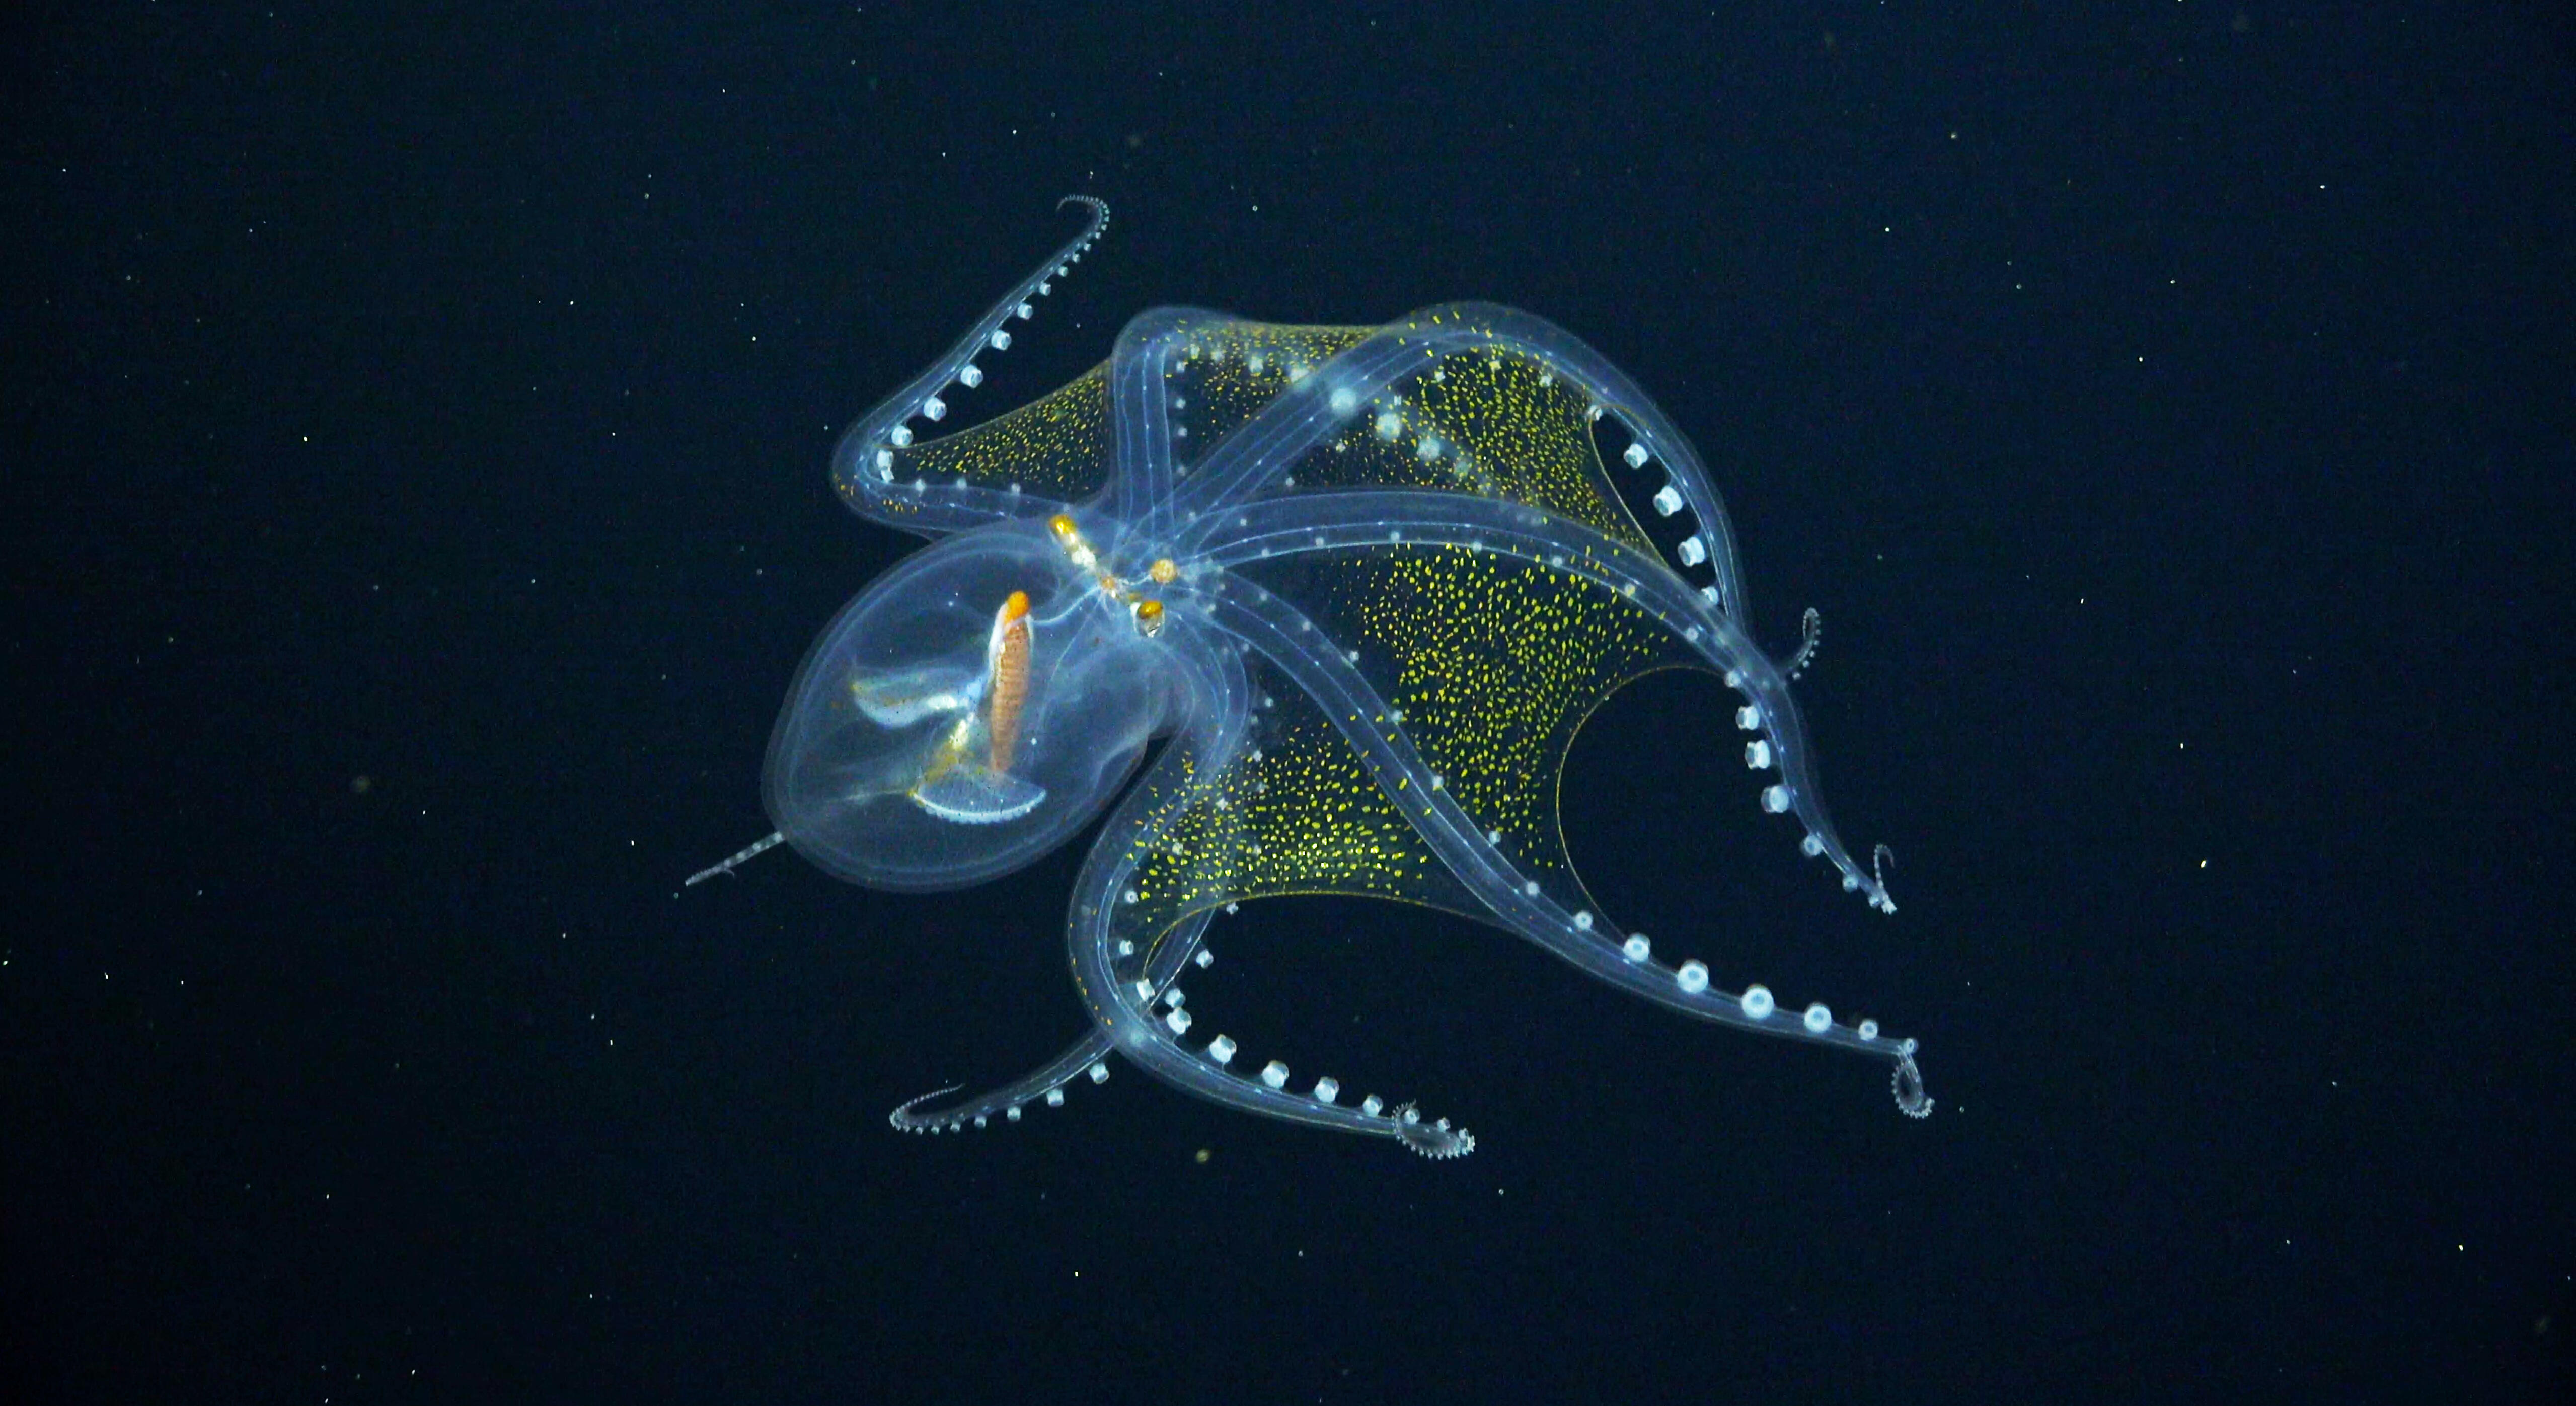 A rare and ghostly glass octopus photographed on a recent expedition to the Pacific Ocean